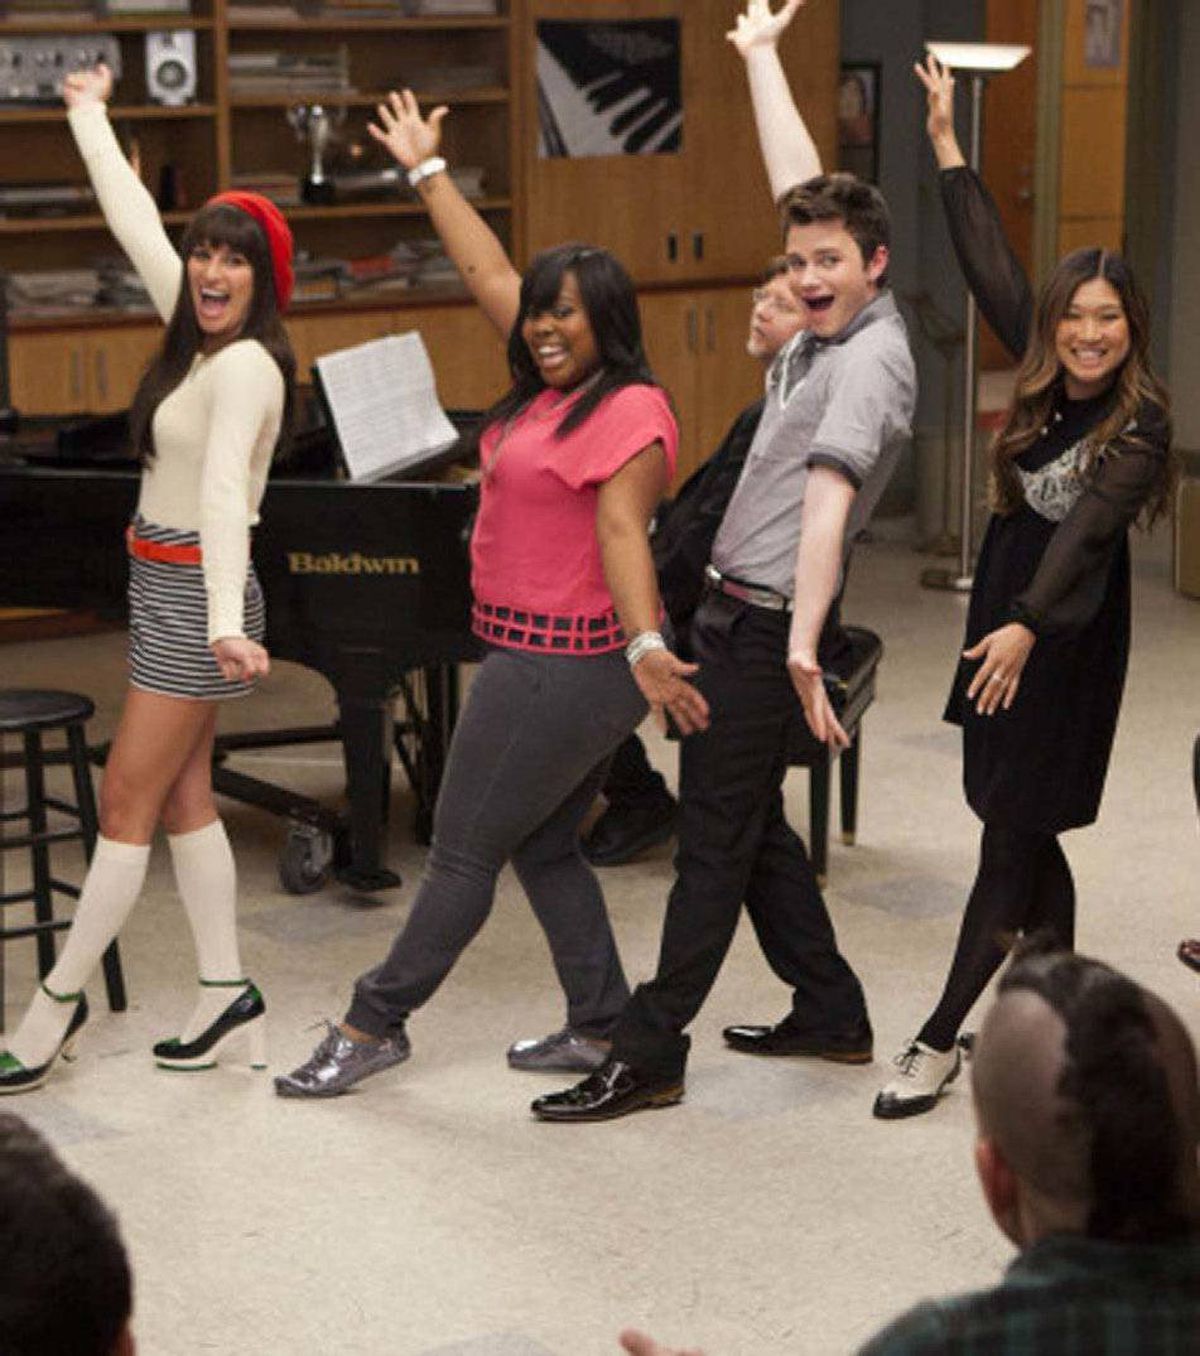 """DRAMA Glee Fox, Global, 9 p.m. ET/PT Well, the glee club had to finish high school eventually, right? Tonight's third-season finale brings graduation day at McKinley High and we should expect that several cast regulars won't be around when Glee returns for its fourth season next September. Amber Riley, who plays Mercedes, has already confirmed she's not coming back. Spunky regular Dianna Agron (Quinn) has also hinted at new opportunities. And it's a safe bet Canadian-born Cory Monteith, who plays Finn, won't be back, considering he recently turned 30. In a recent interview with E! Online, series regular Lea Michele, who plays Rachel, confirmed the show will follow several characters as they enroll at the fictional New York Academy of Dramatic Arts next season (so long, Kurt) and tonight's finale will feature a """"big cliffhanger"""" for her character and sweetheart Finn."""